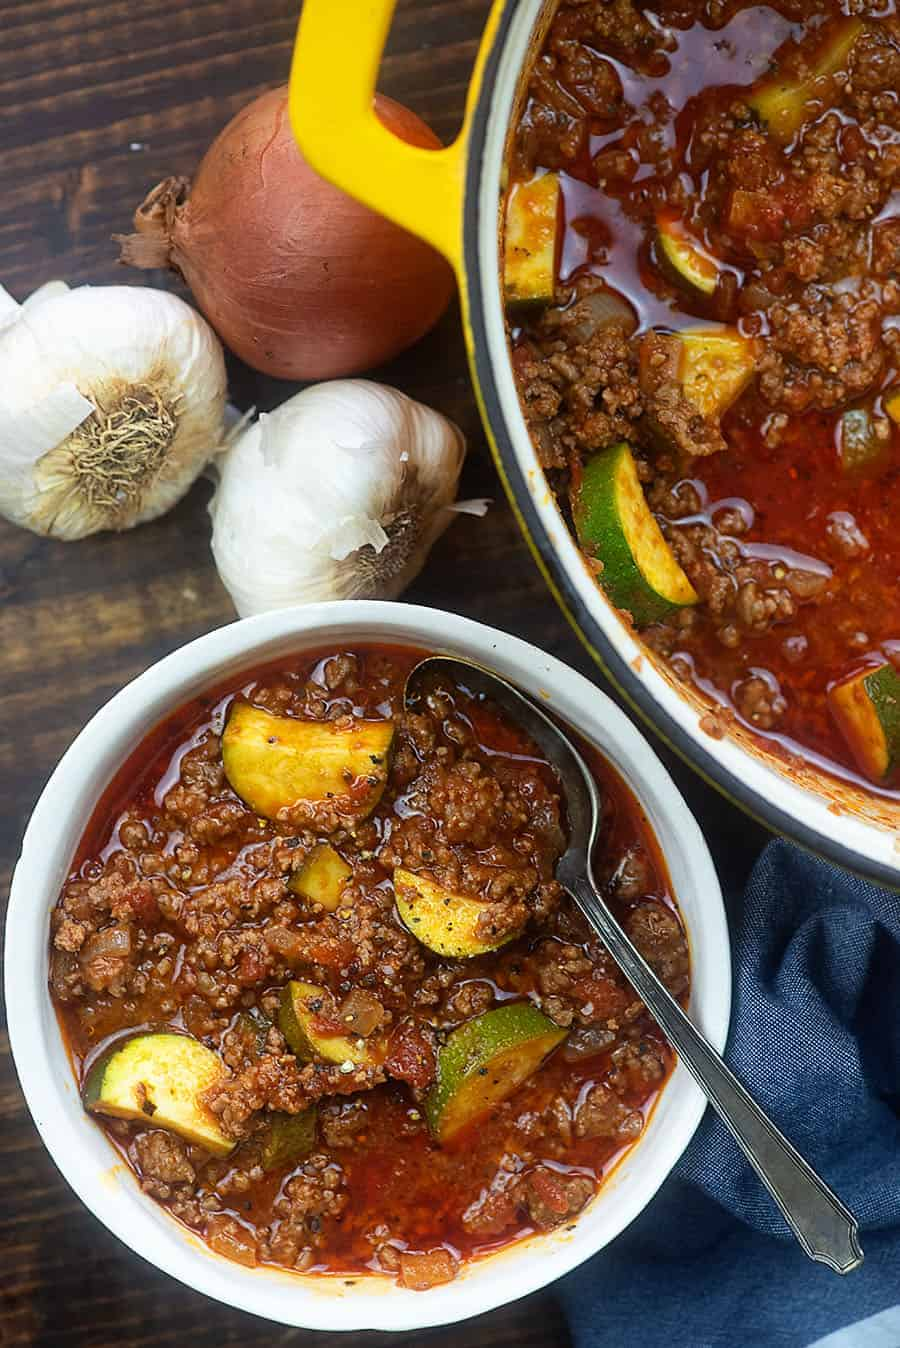 Low Carb Goulash - skip the macroni and use zucchini in this simple recipe instead! #lowcarb #goulash #keto #recipe